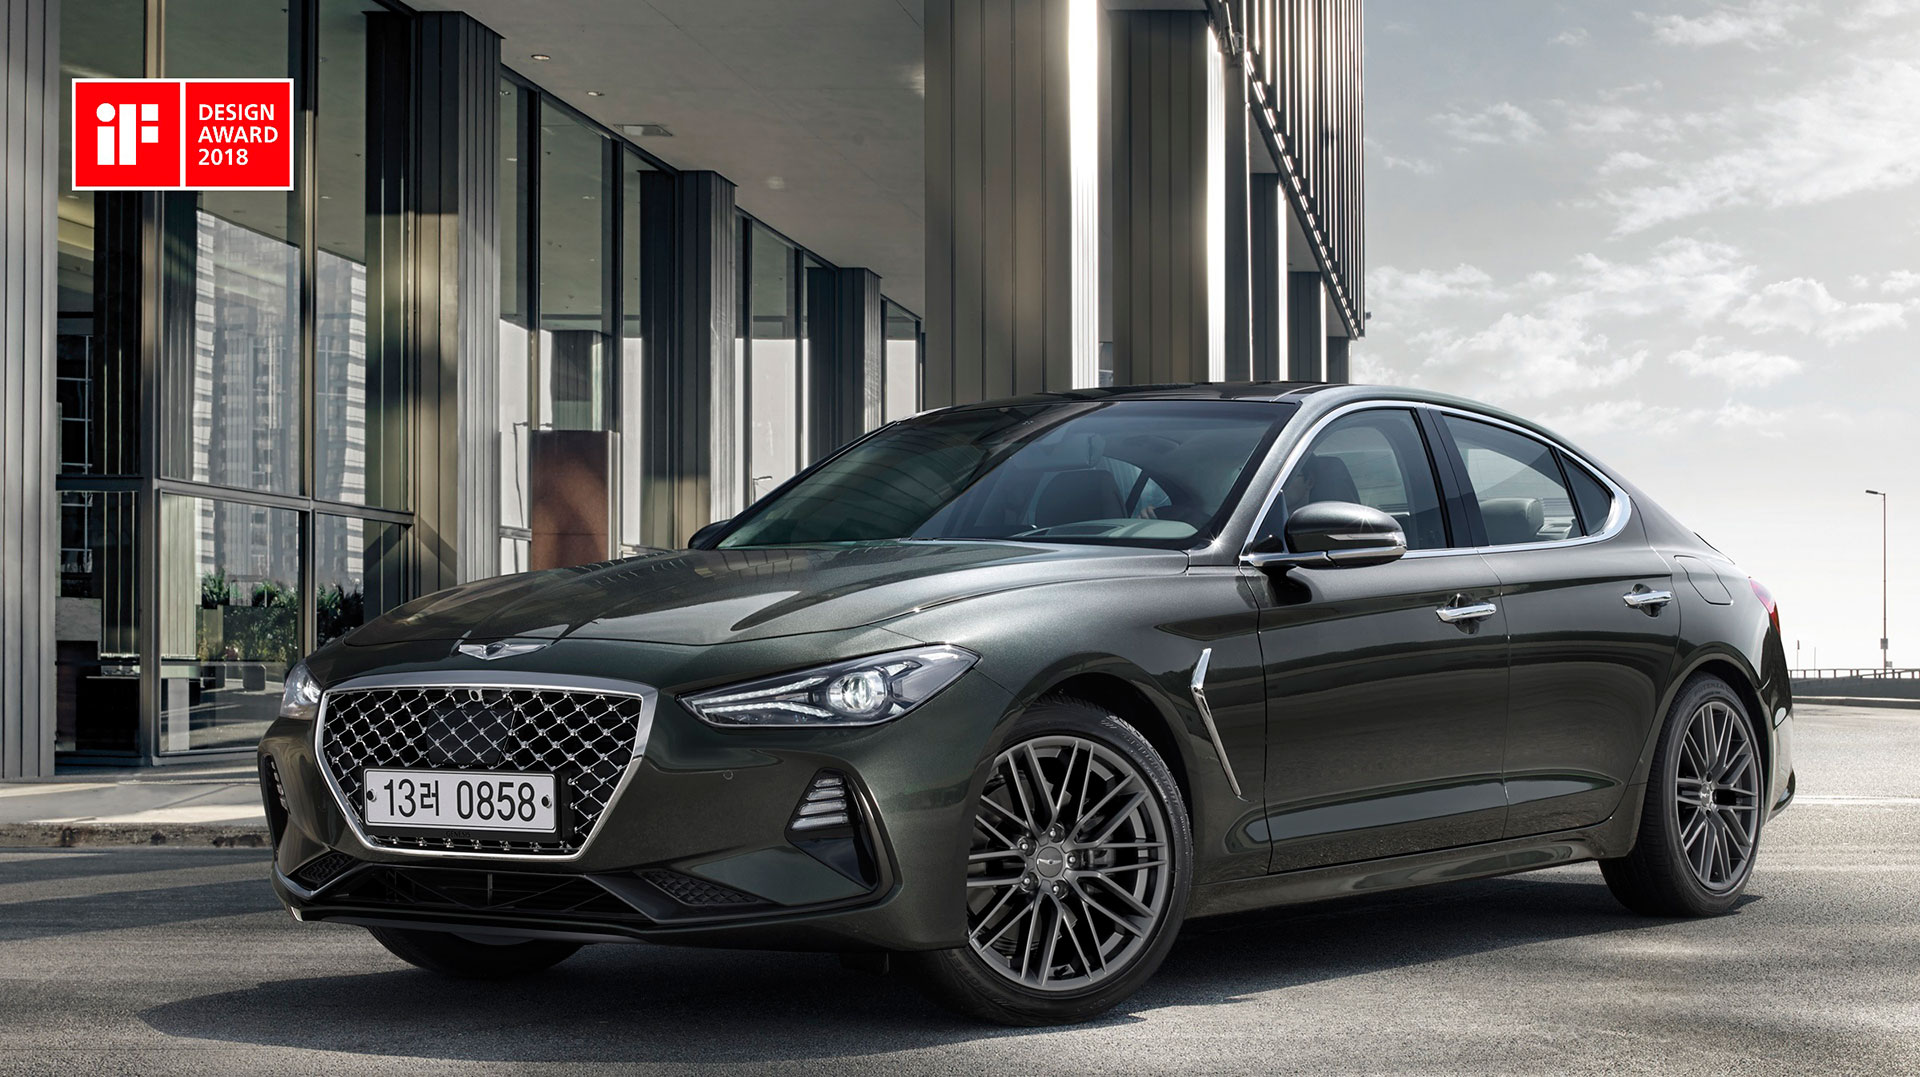 Genesis-G70-iF-Design_Arab-Motor-World